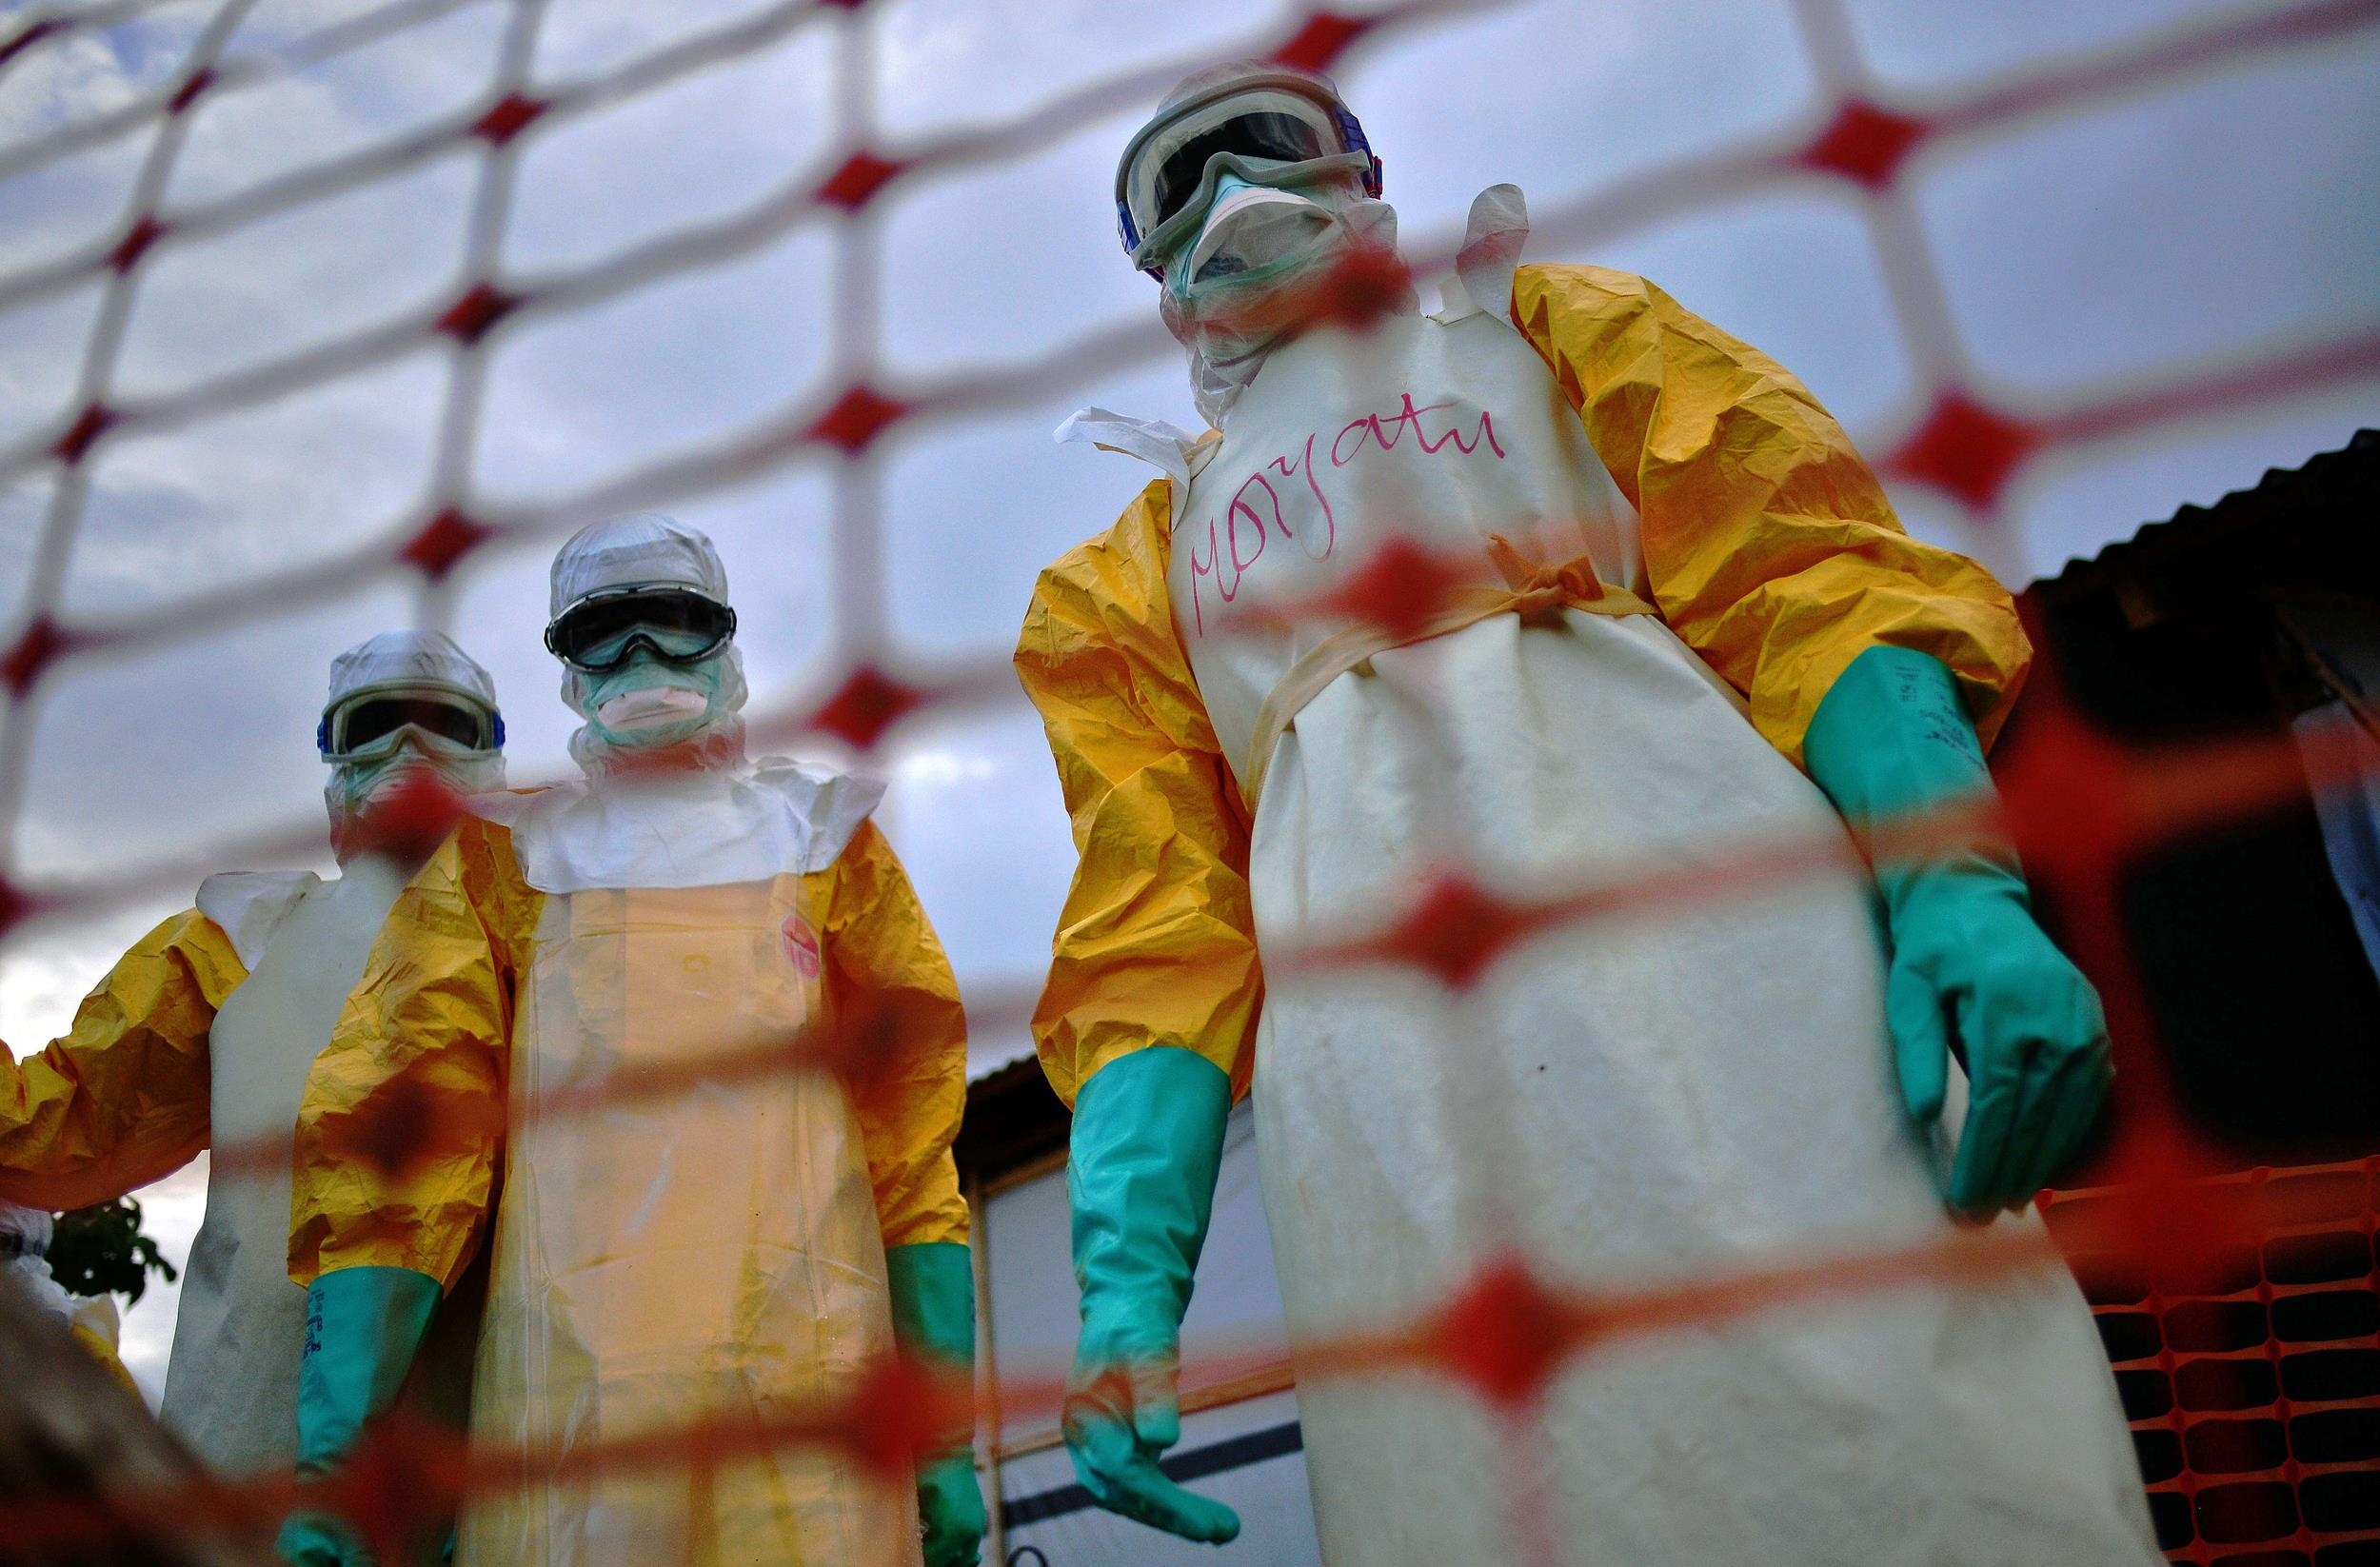 Image: Medecins Sans Frontieres (MSF) medical staff wearing protective clothing treat the body of an Ebola victim